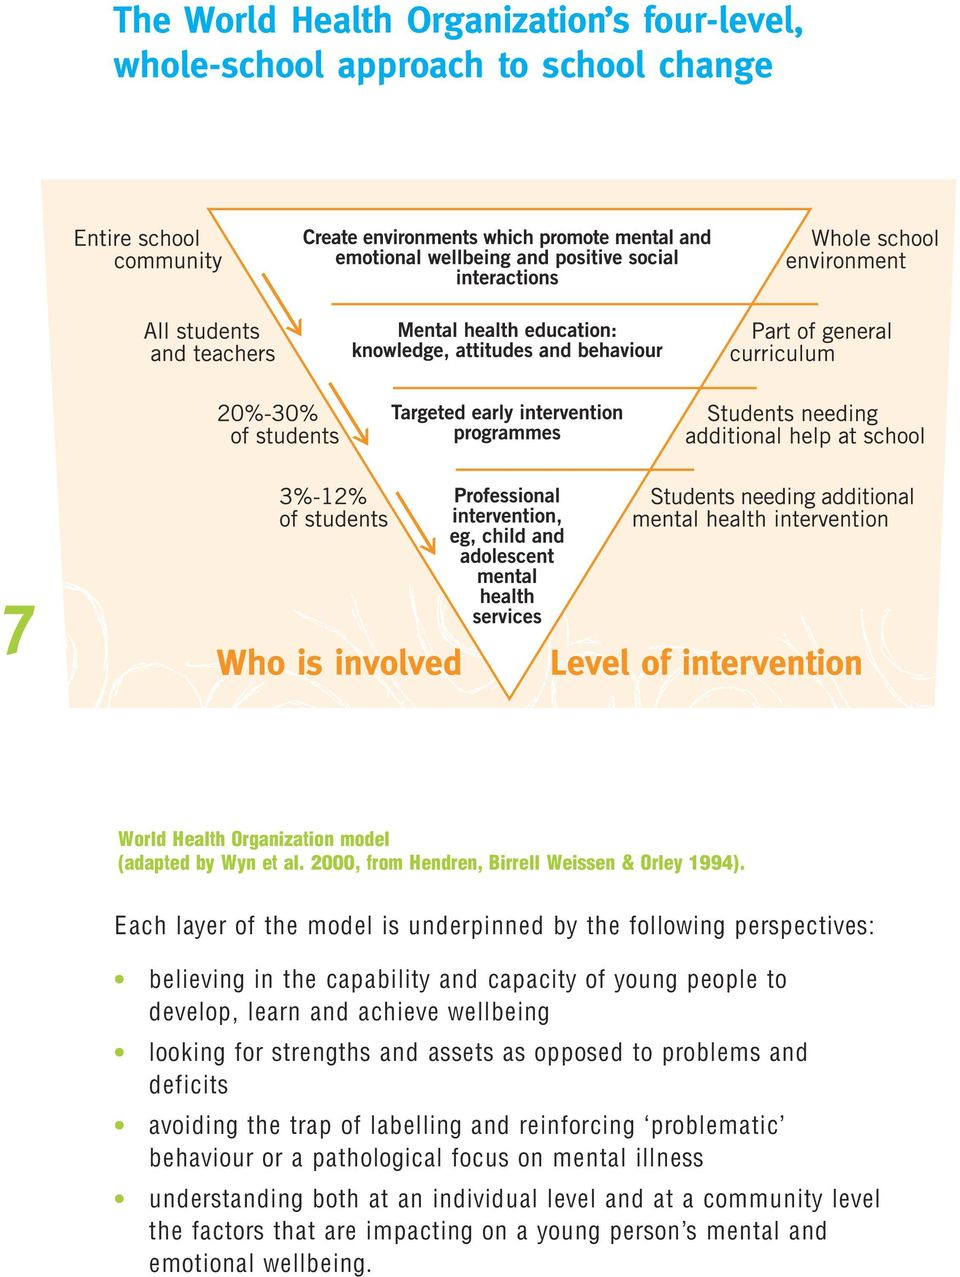 Each layer of the model is underpinned by the following perspectives: believing in the capability and capacity of young people to develop, learn and achieve wellbeing